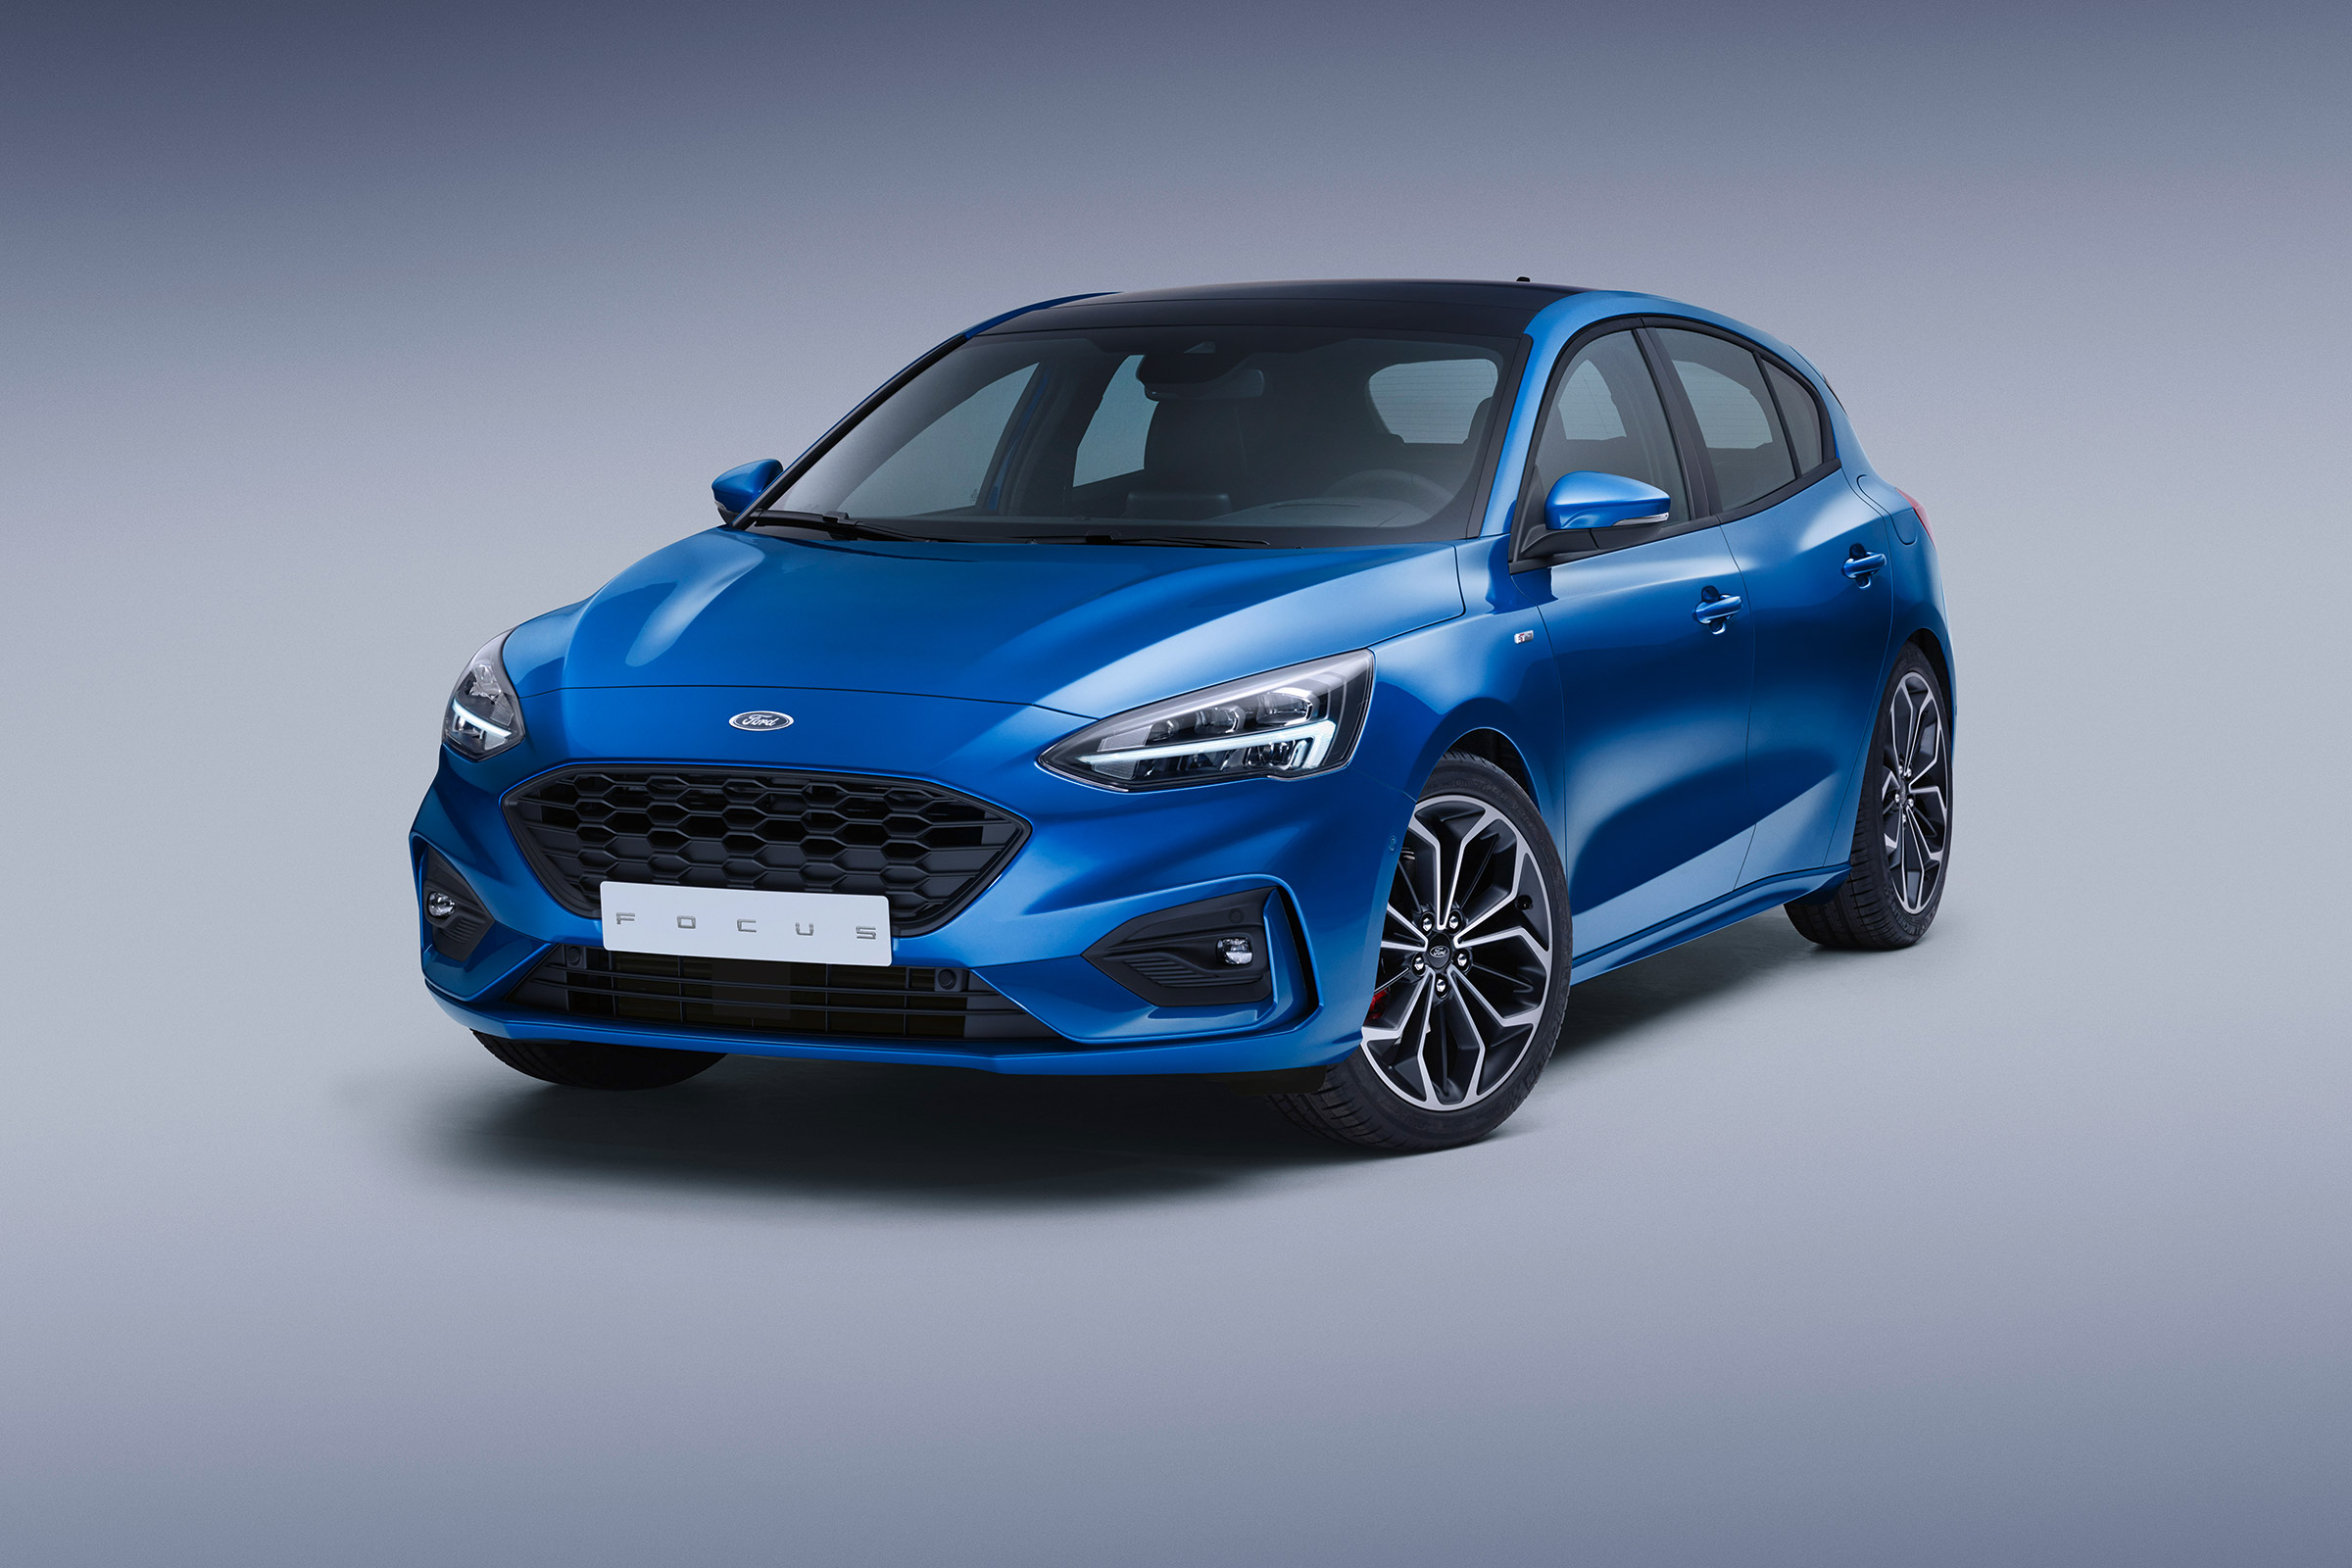 New 2018 Ford Focus Revealed All New Rival For The Vw Golf Evo